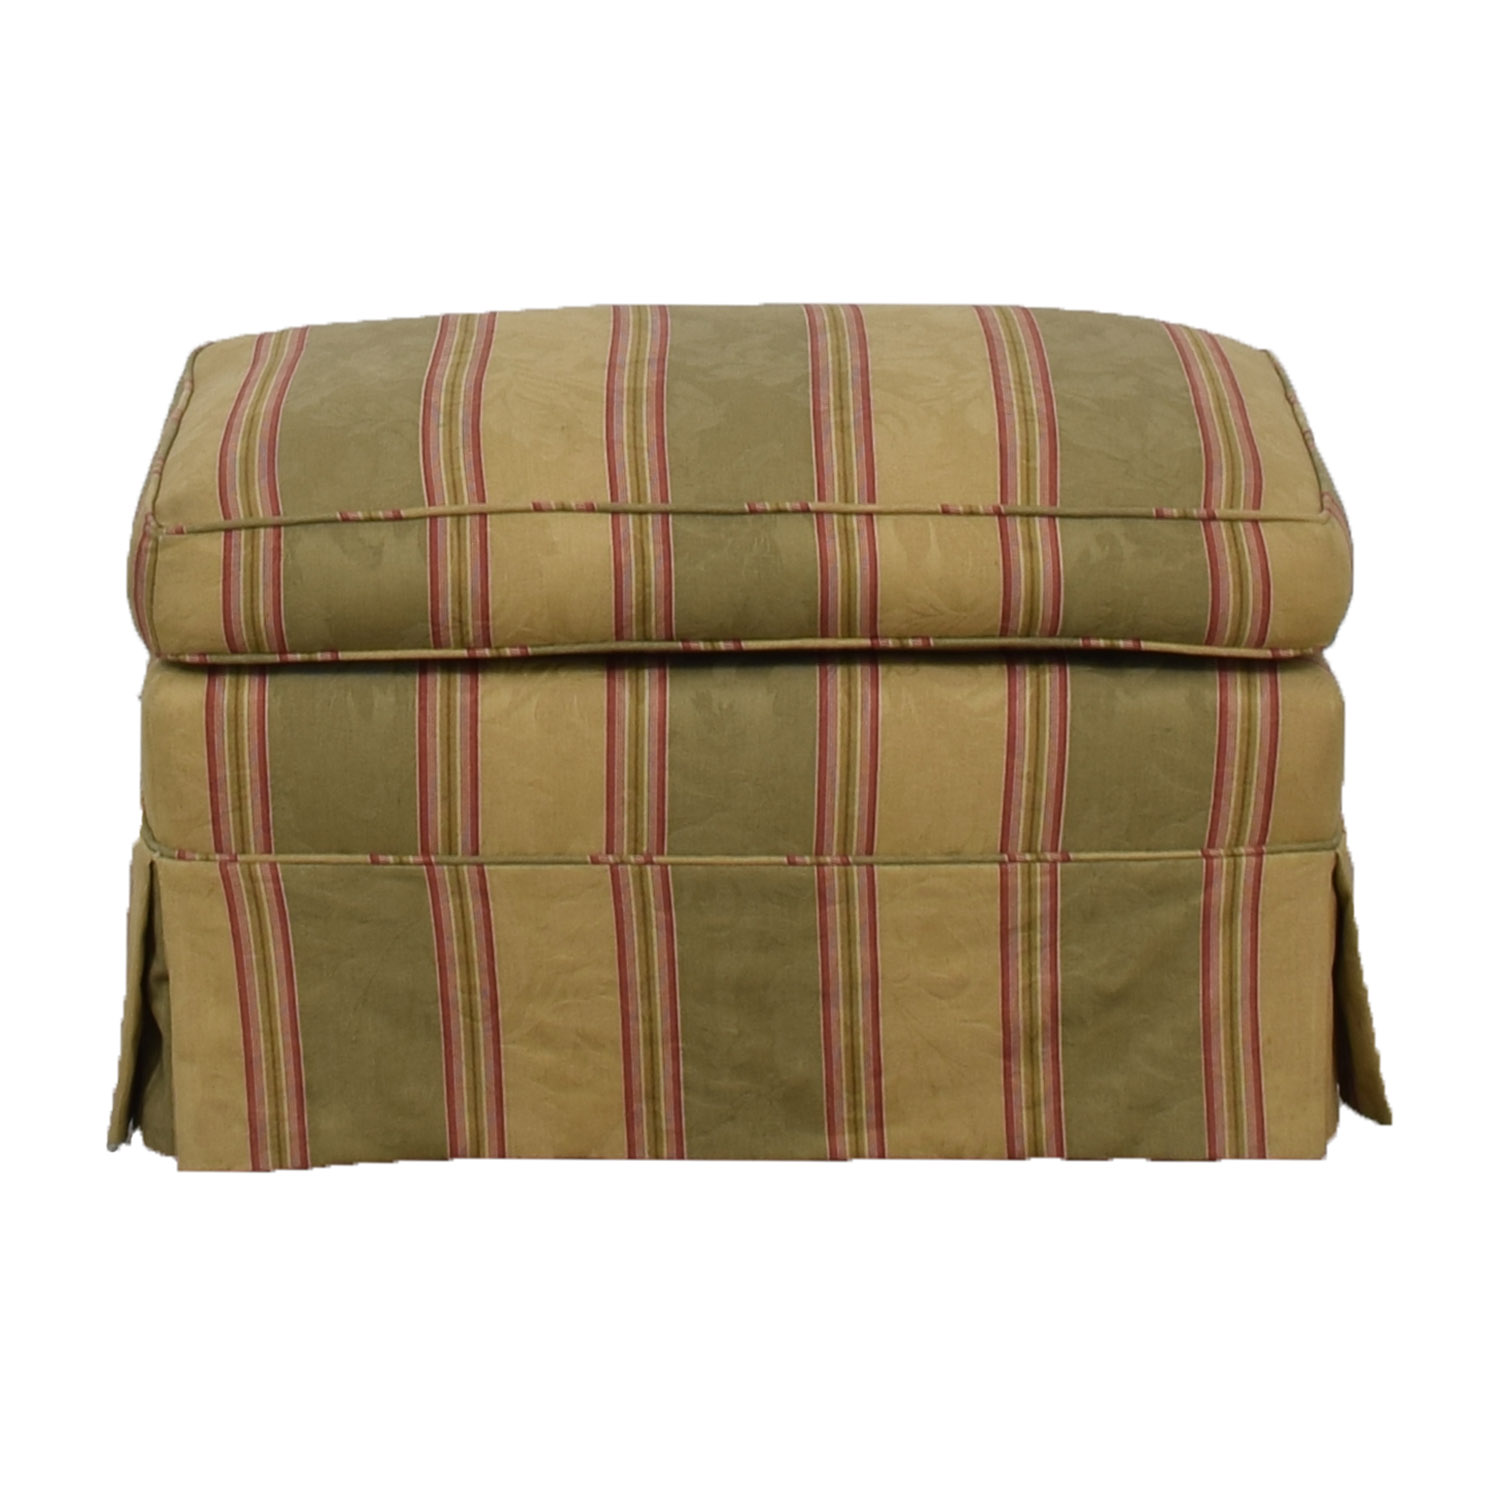 buy  Multi-Colored Stripped Ottoman online